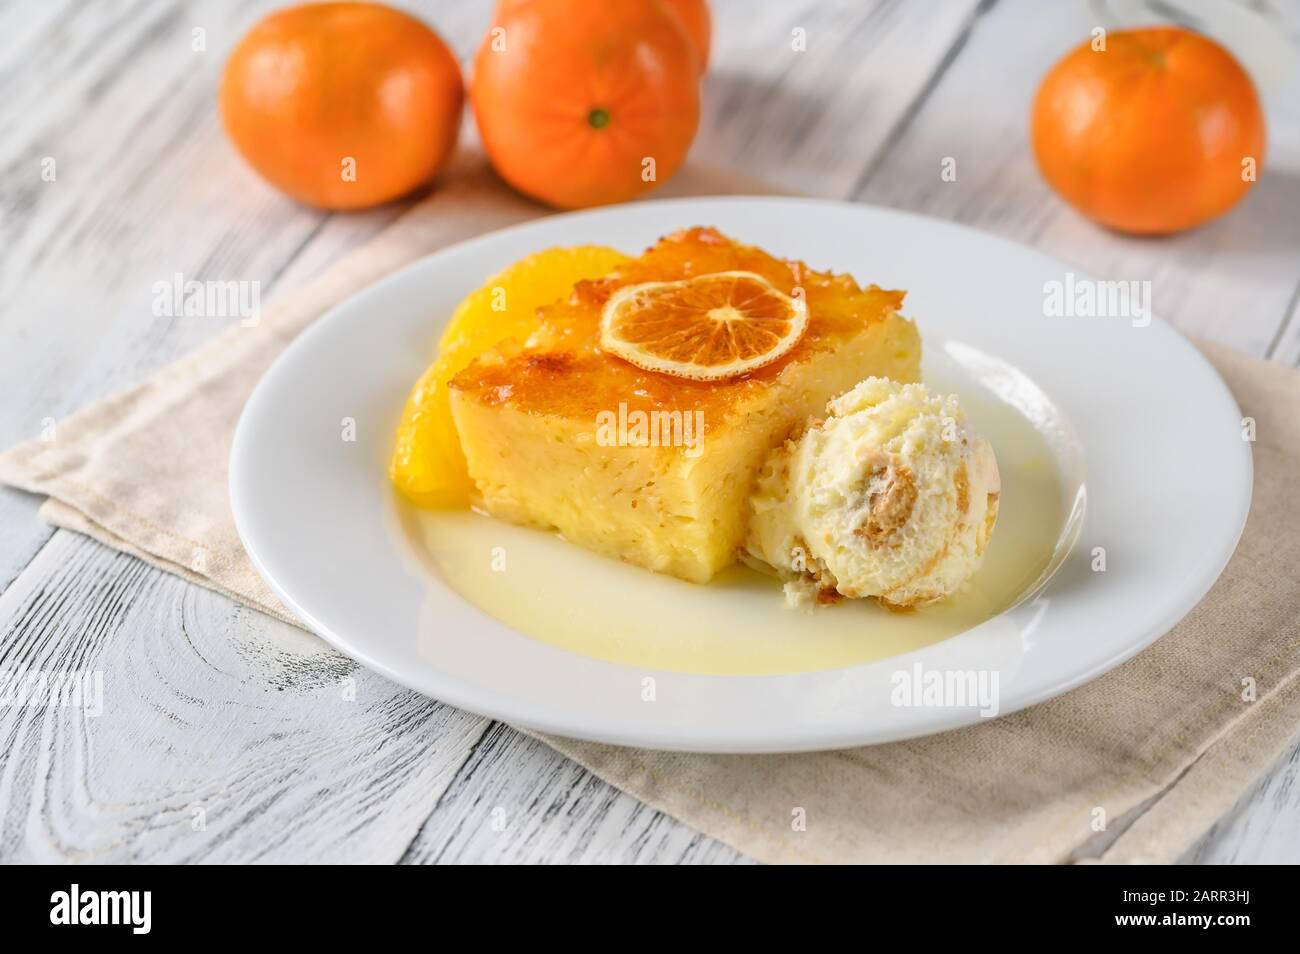 Portokalopita - Greek phyllo orange cake Stock Photo